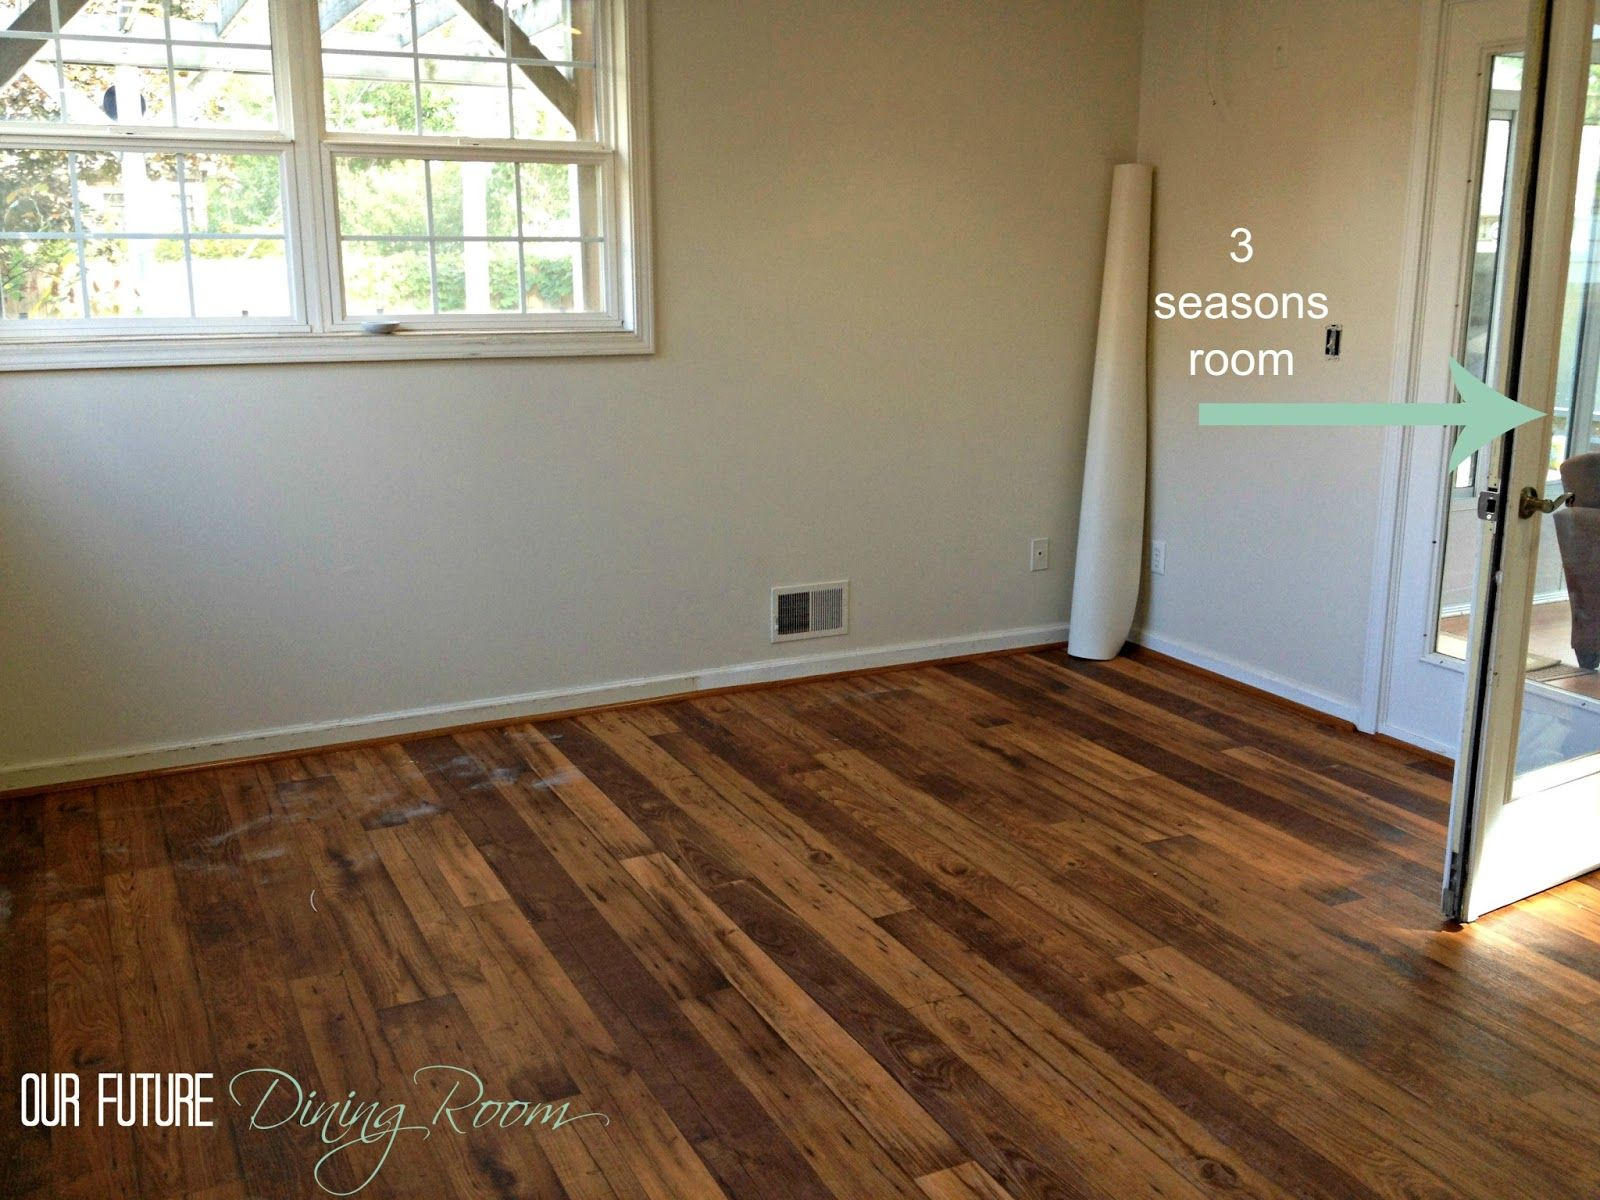 Linoleum Wood Flooring